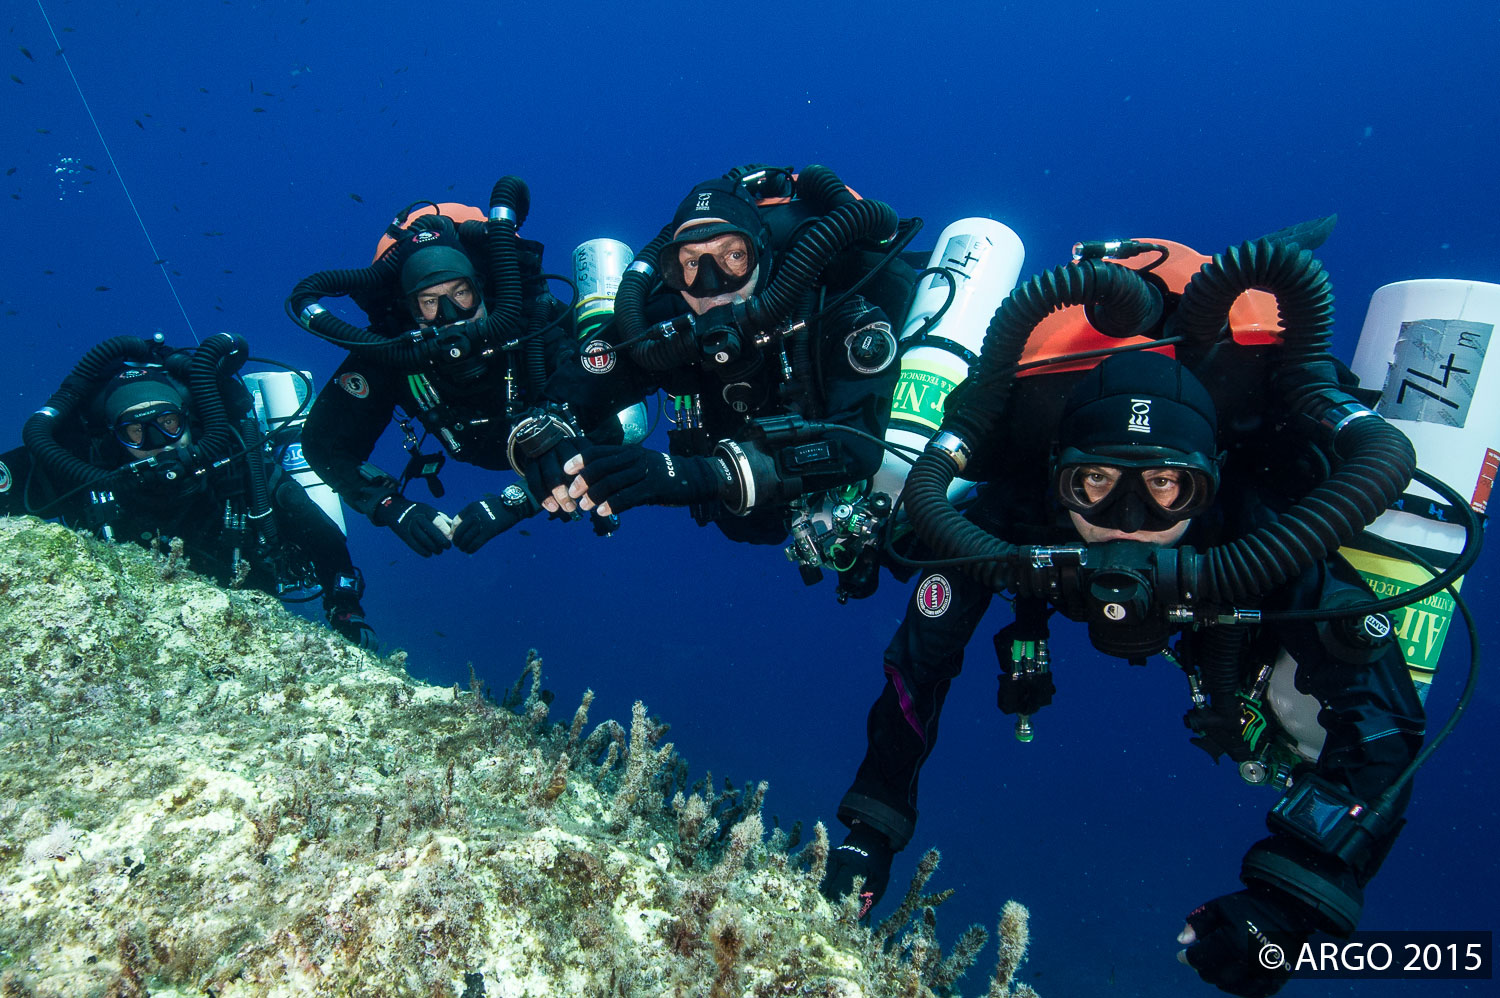 Dives are staged to maximise efficiency, with decompression time often overlapping so that multiple buddy pairs complete their hang time together.